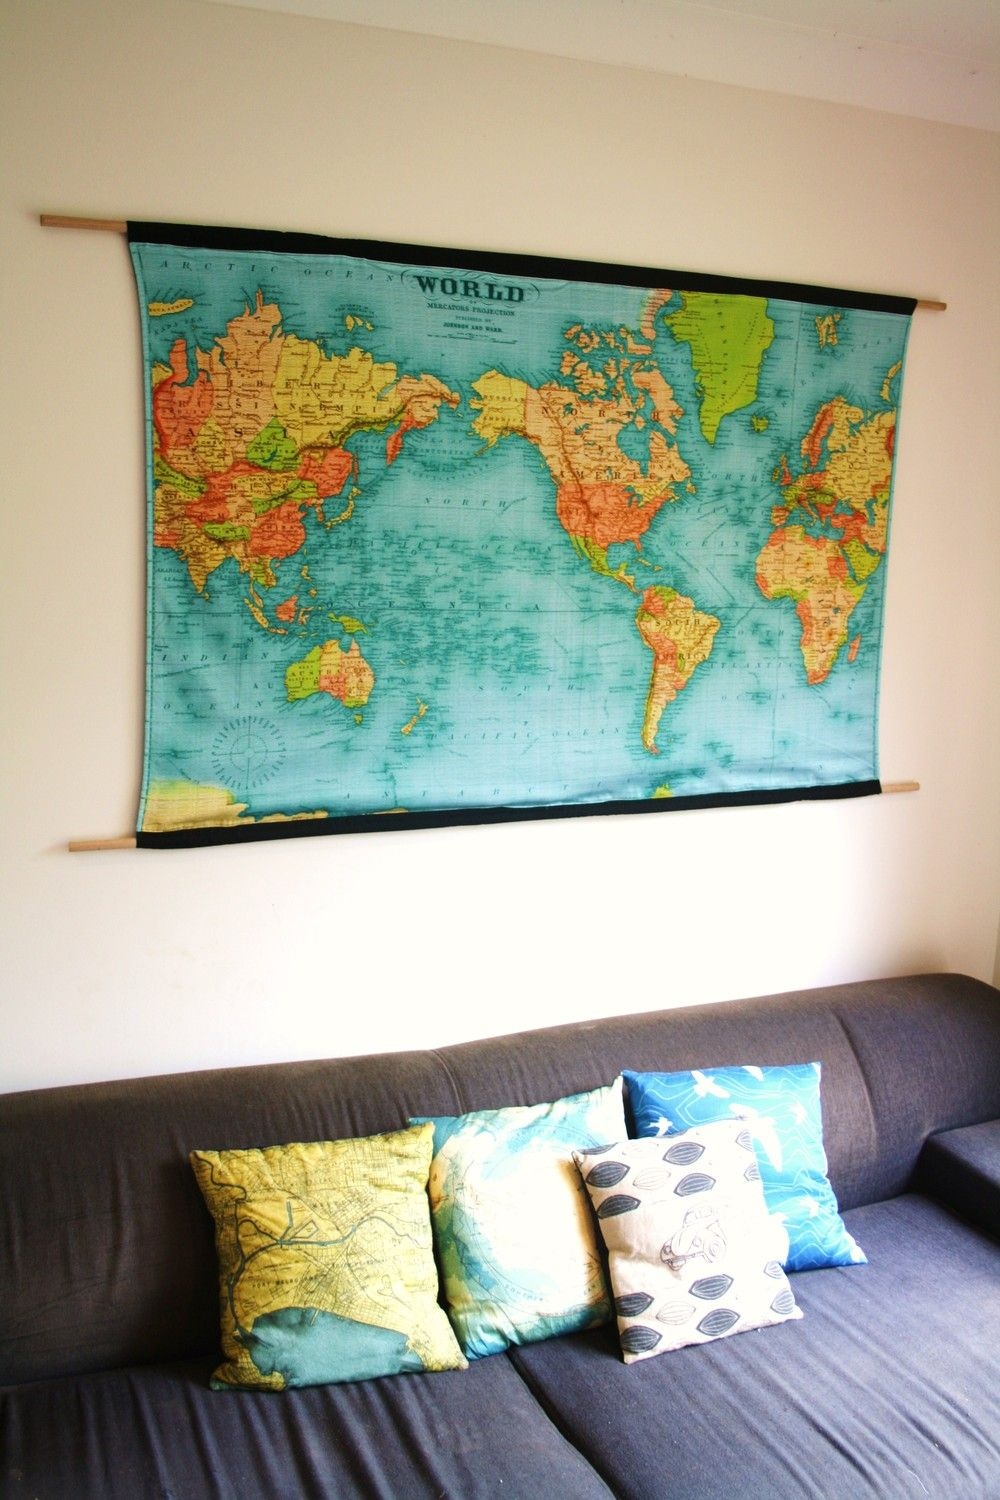 World map wall chart xl vintage school chart world map vintage vintage world map huge wall hanging organic cotton 57 inches 145cm long x 36inches92cms 14900 via etsy gumiabroncs Choice Image